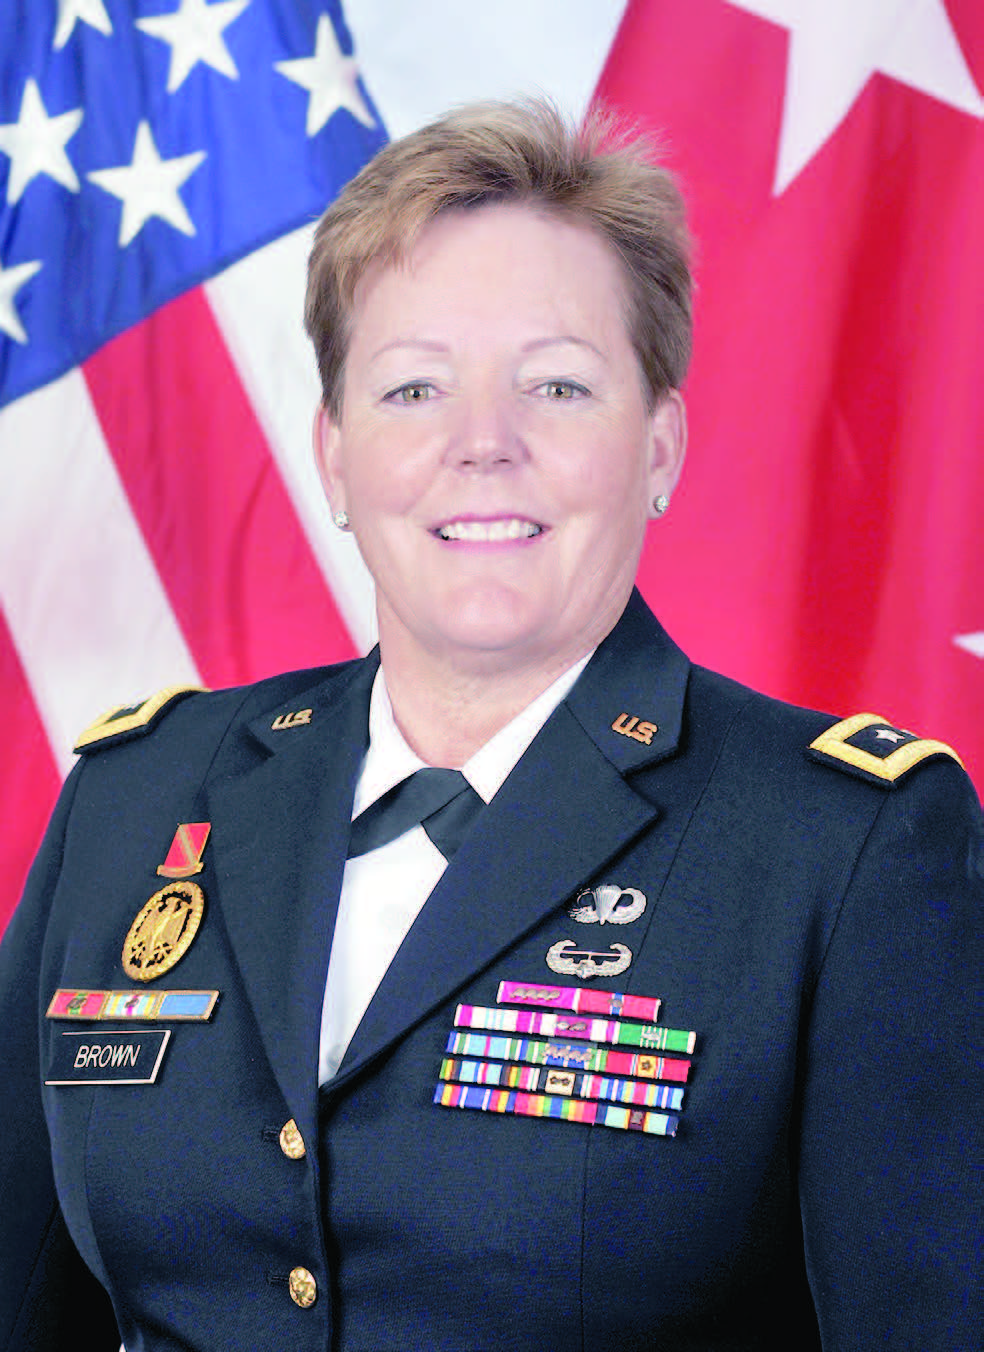 Color formal photo of Major General Heidi V. Brown